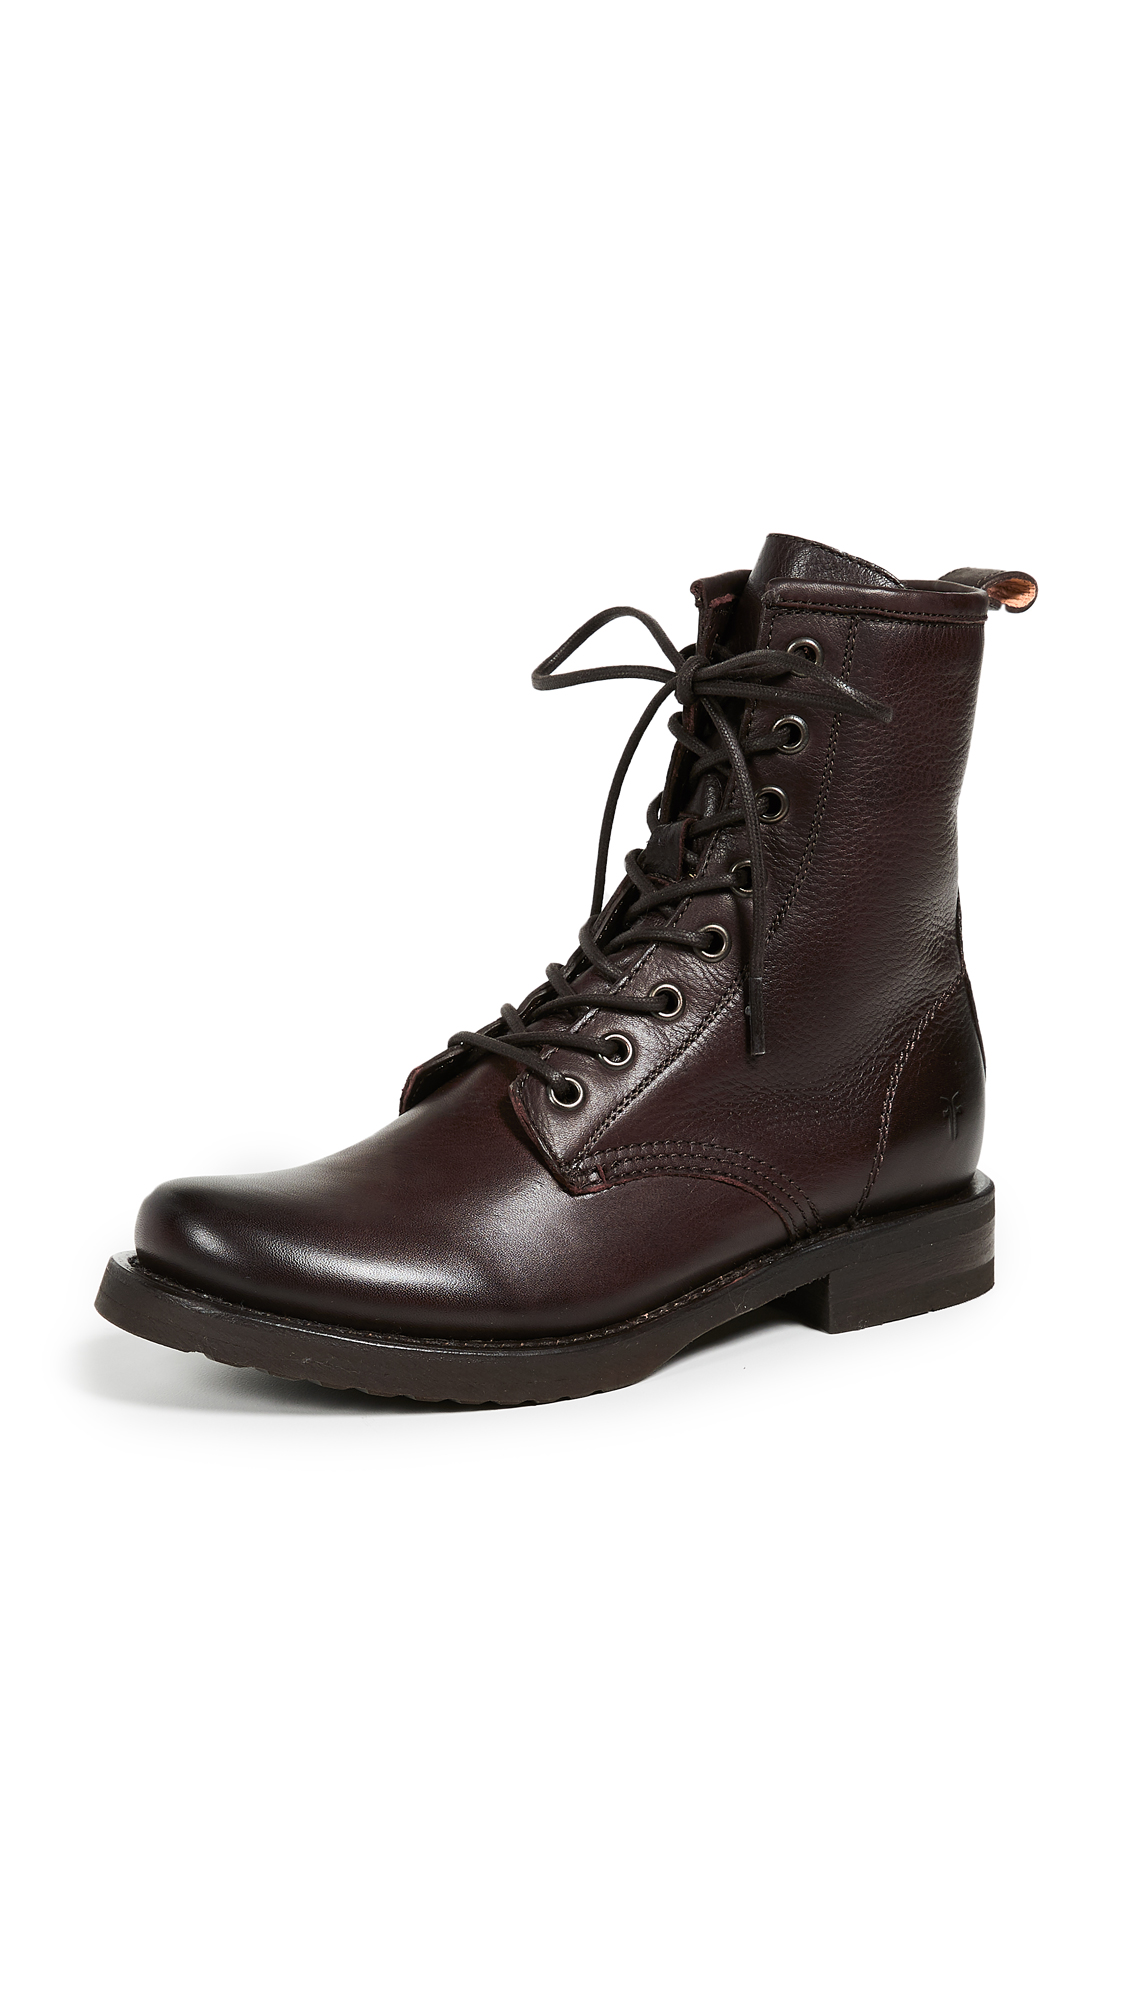 Frye Veronica Combat Boots - Dark Brown